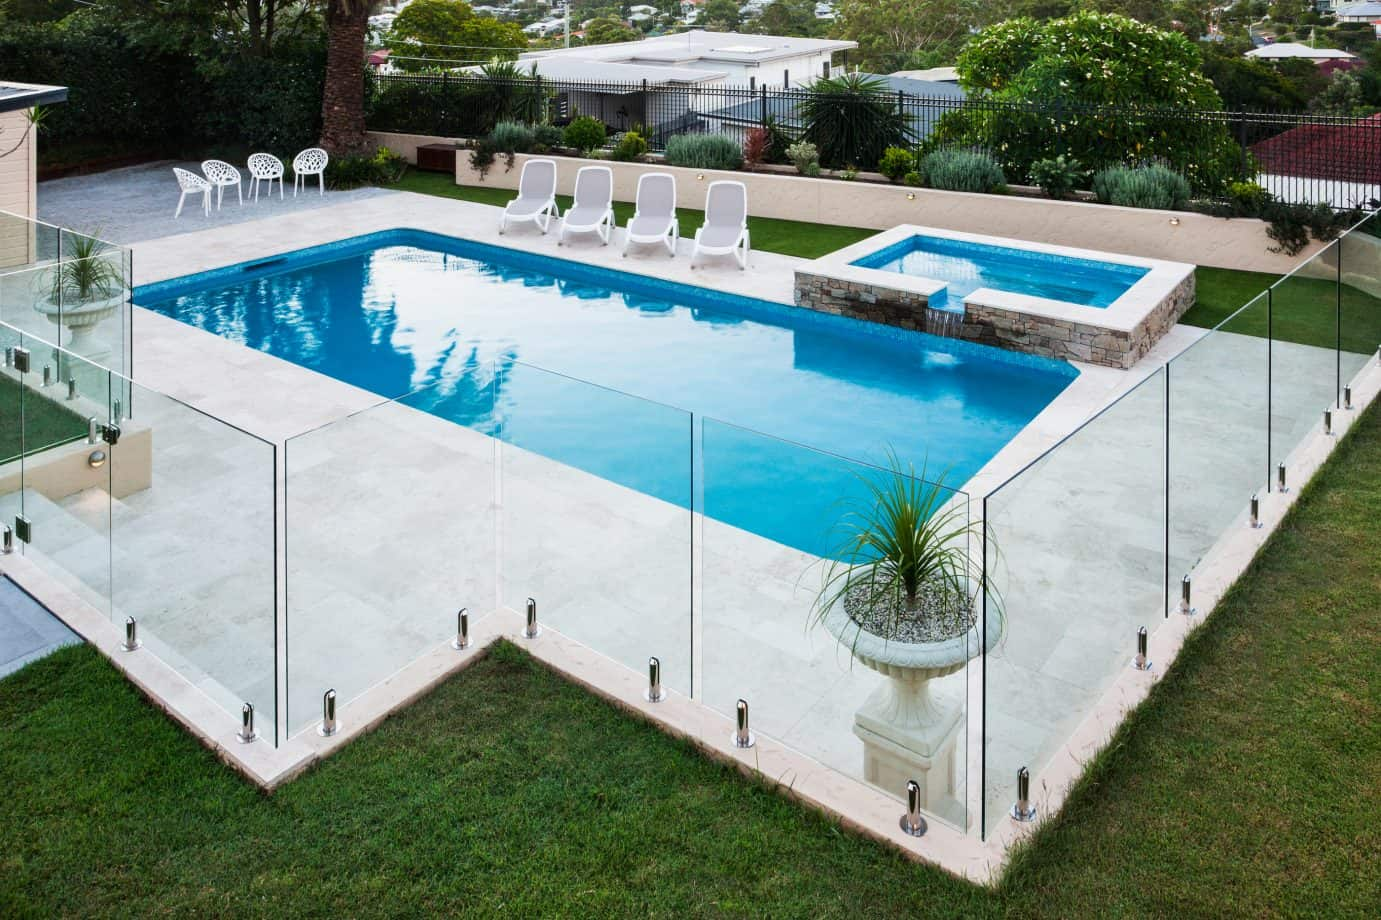 Pool certification requirements in sydney pool certify pool certification 1betcityfo Images